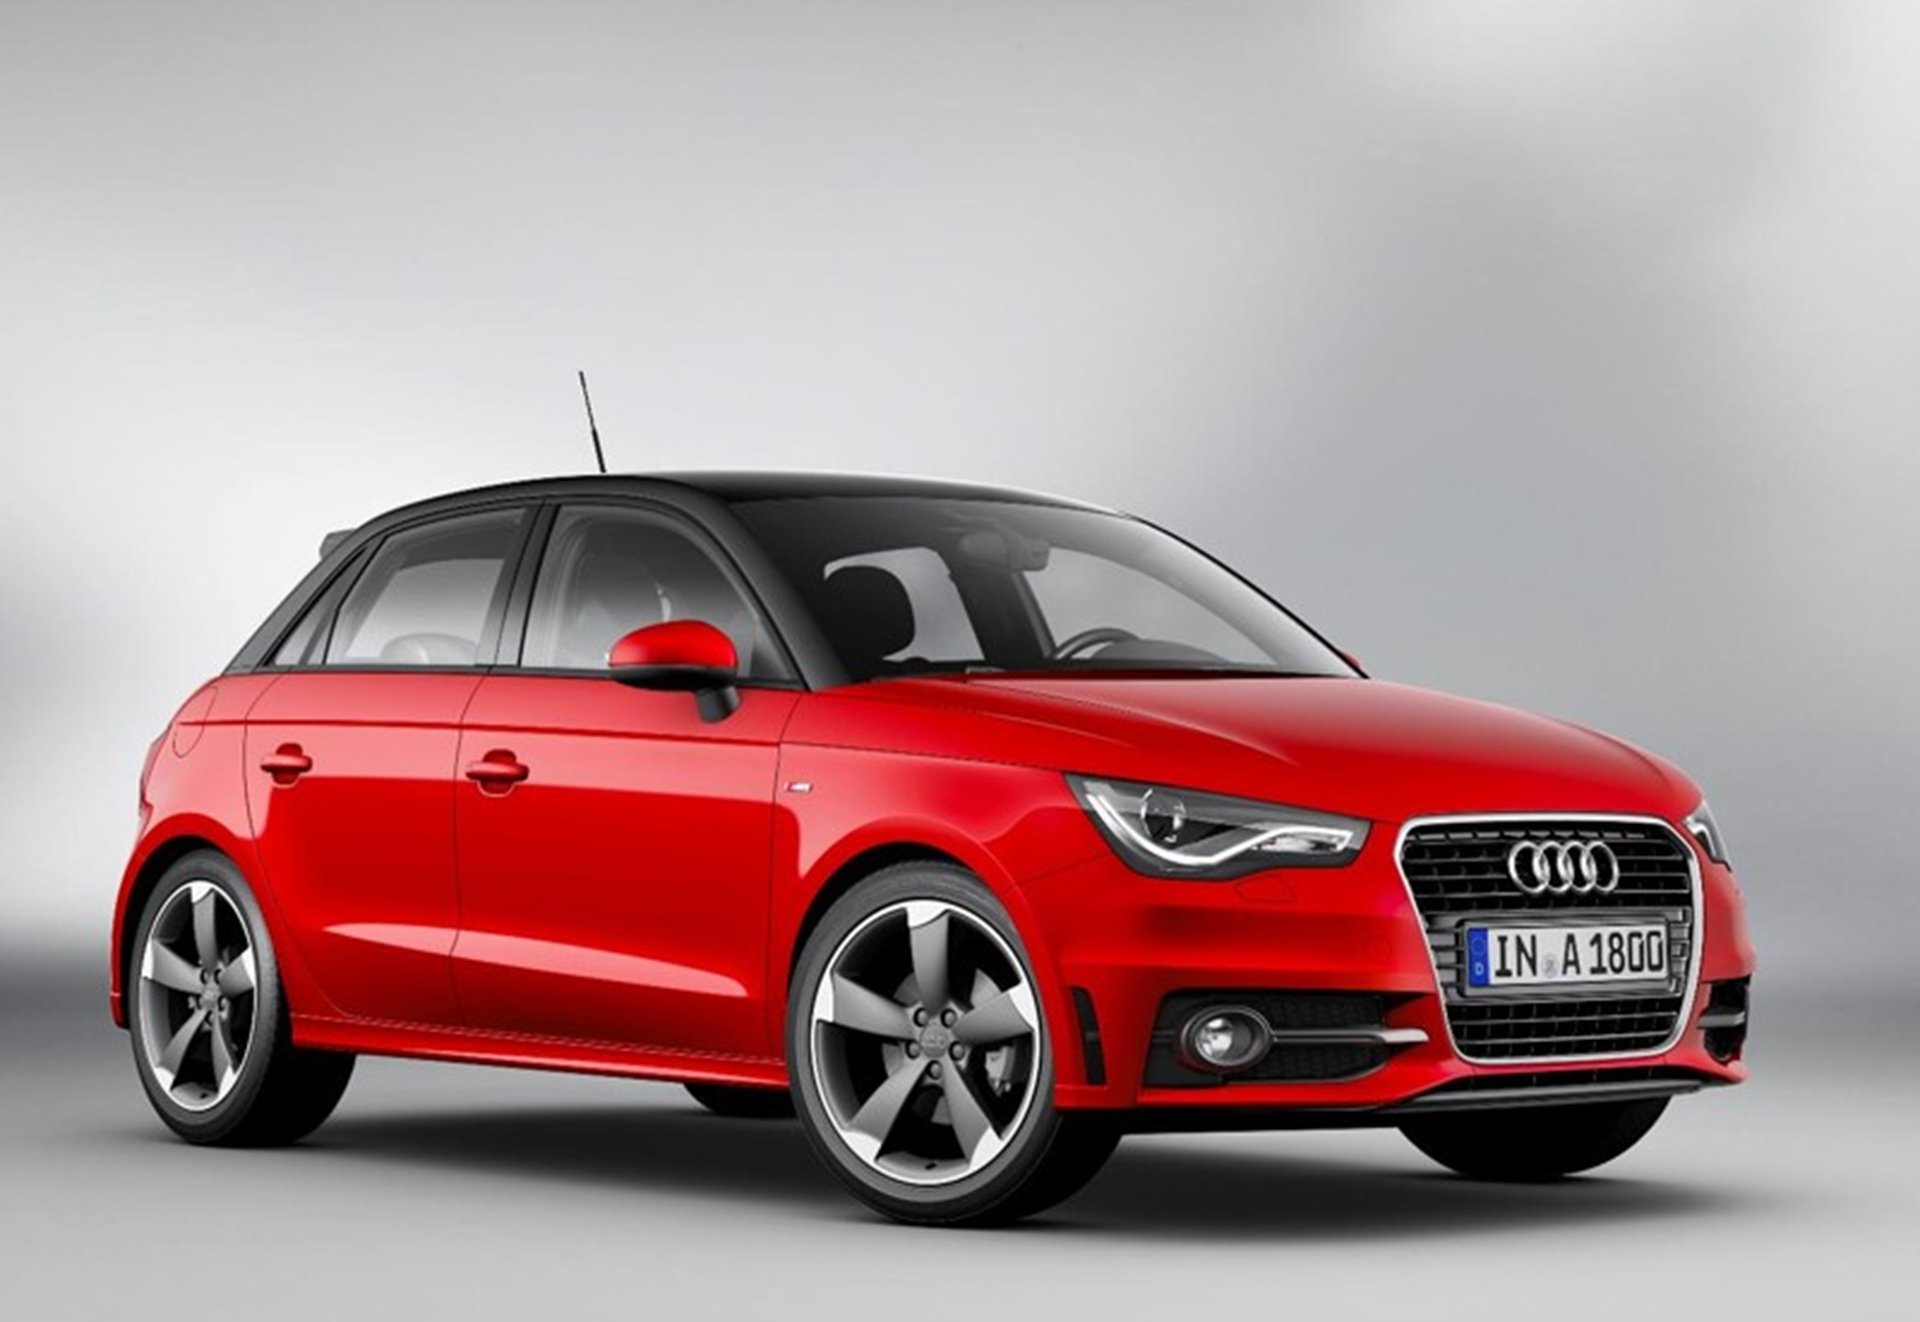 New Audi A1 SportBack 2012 Front View